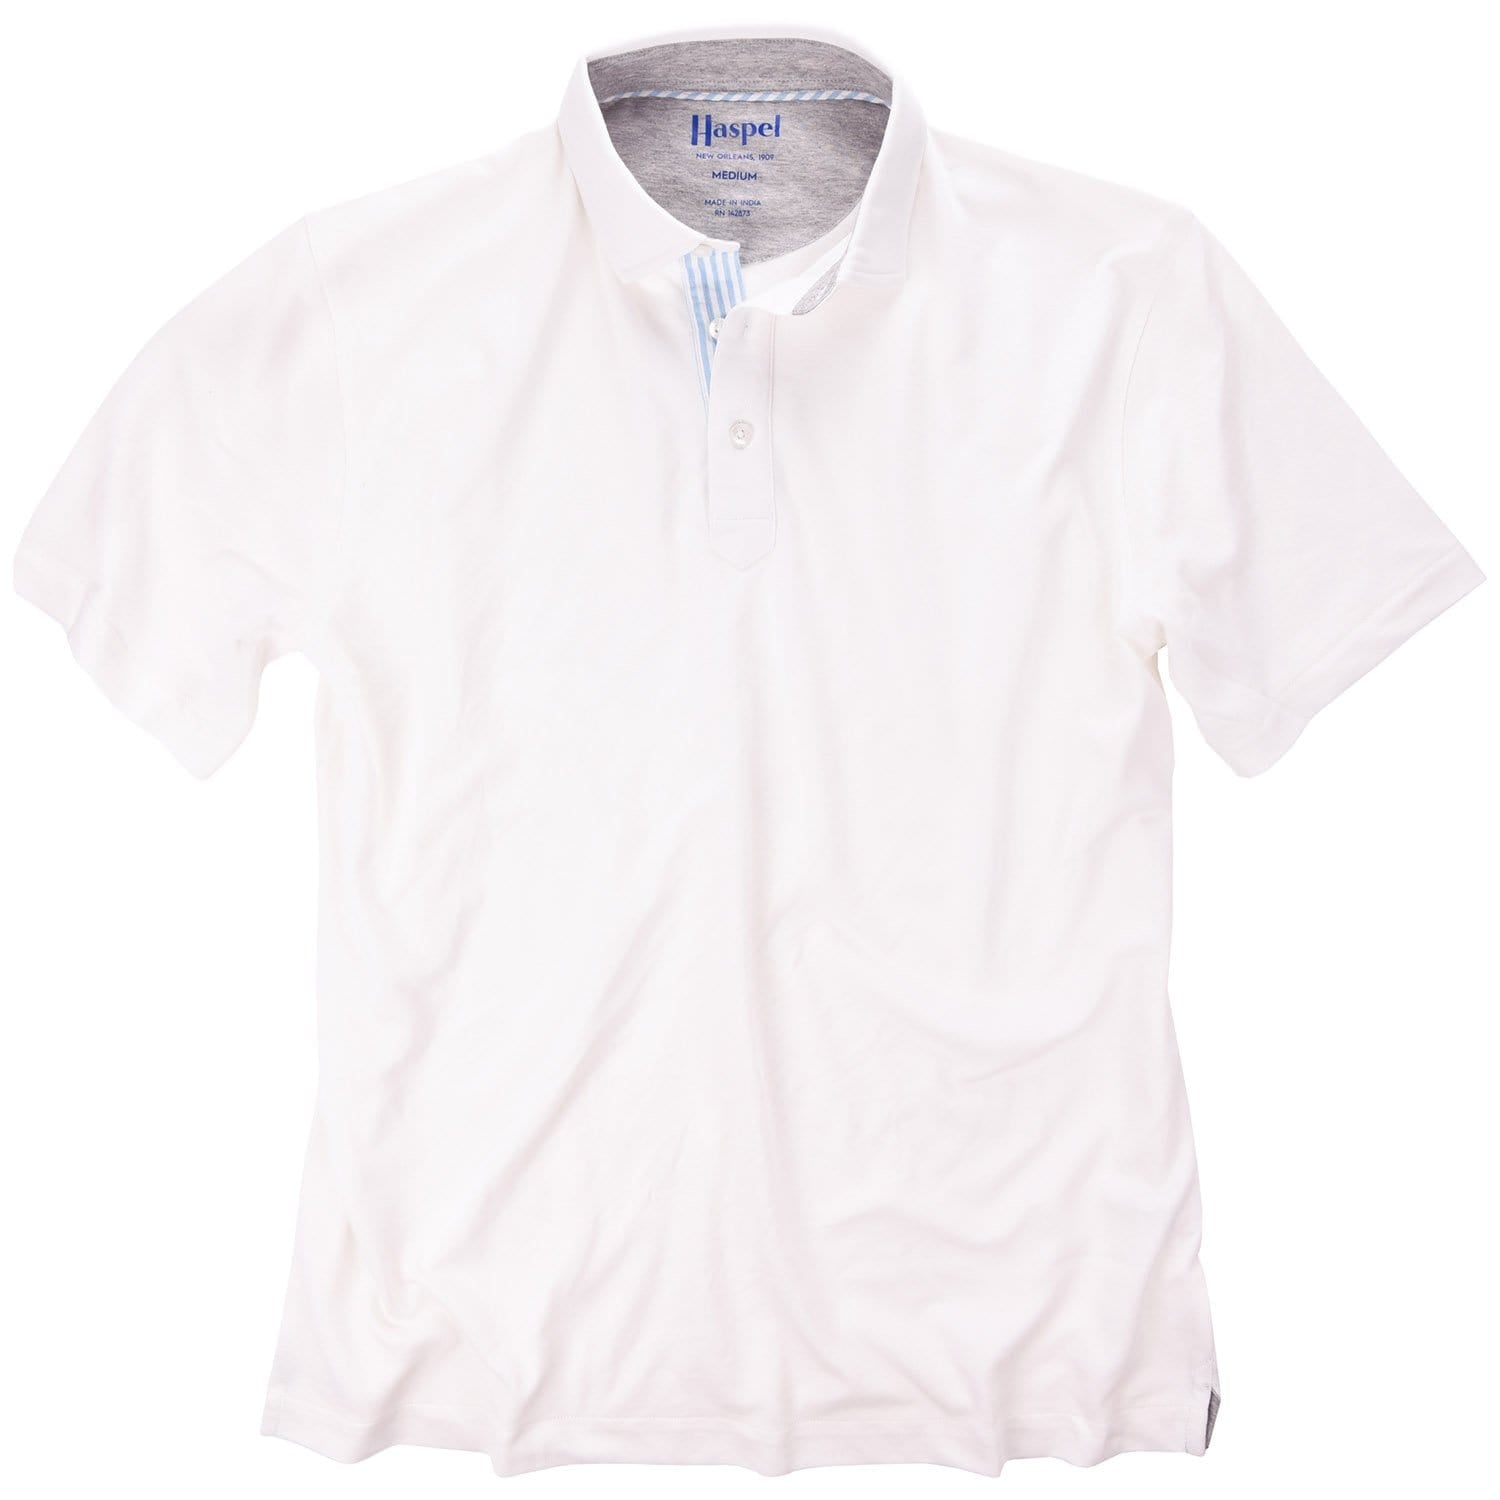 Fulton White Stretch Pique Polo - Haspel Clothing